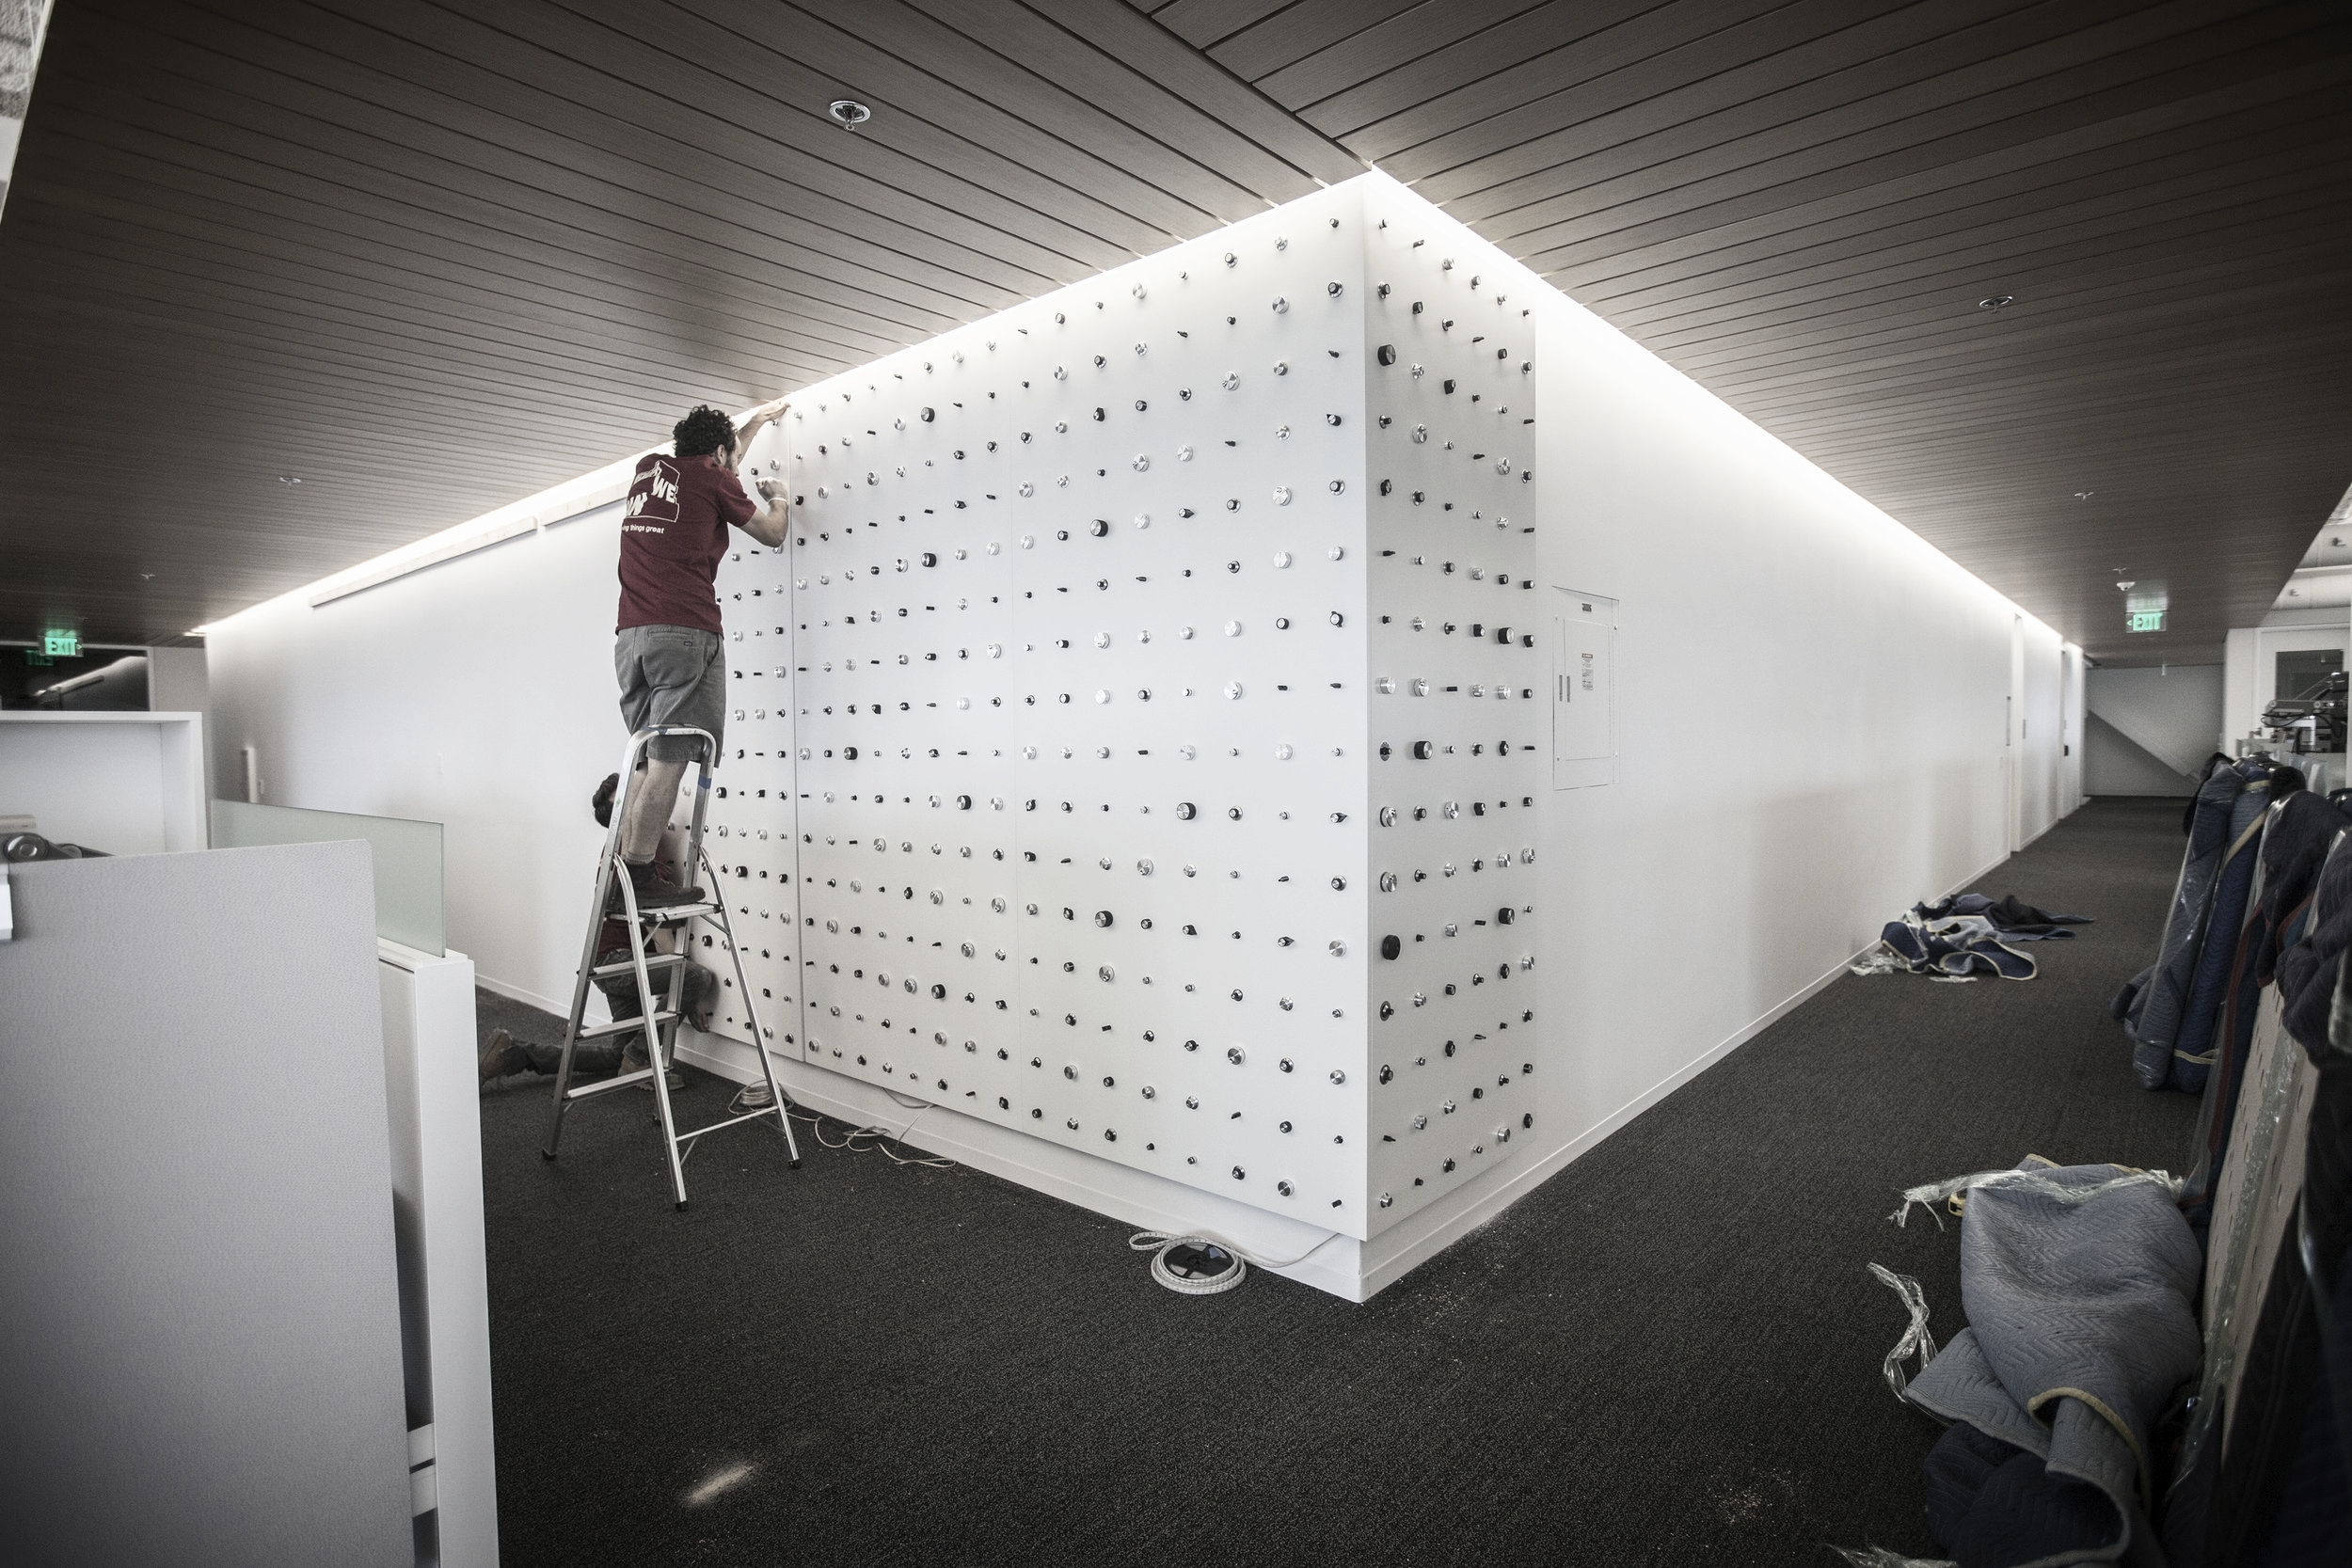 Created in separate 4ft x 8ft panels, the installation hanging was done with a meticulous precision to assure the whole piece looked like one seamless unit.